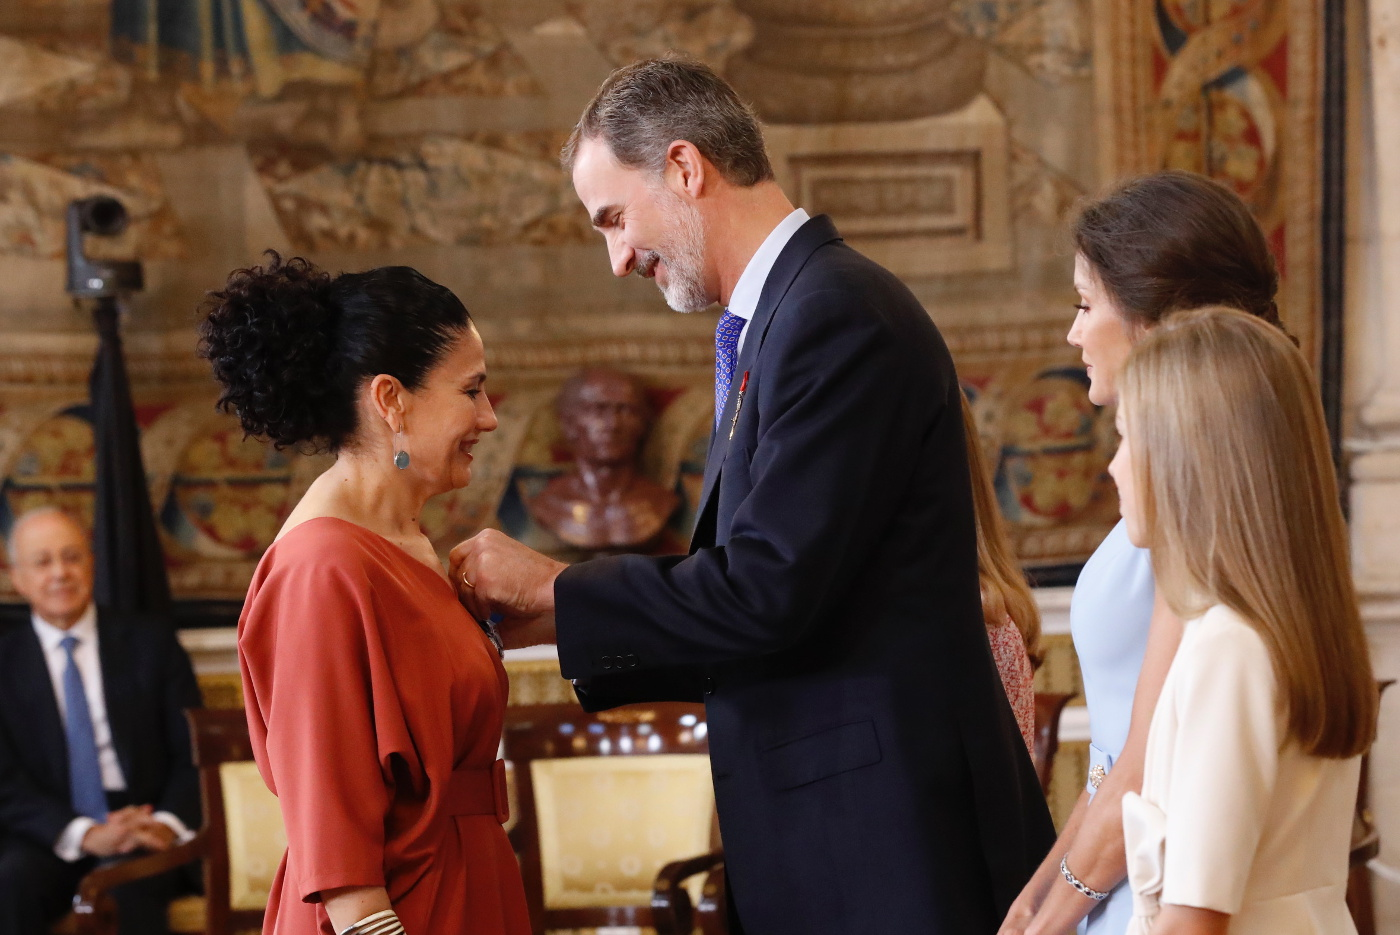 Spanish royals attend Order of Civil Merit ceremony 2019